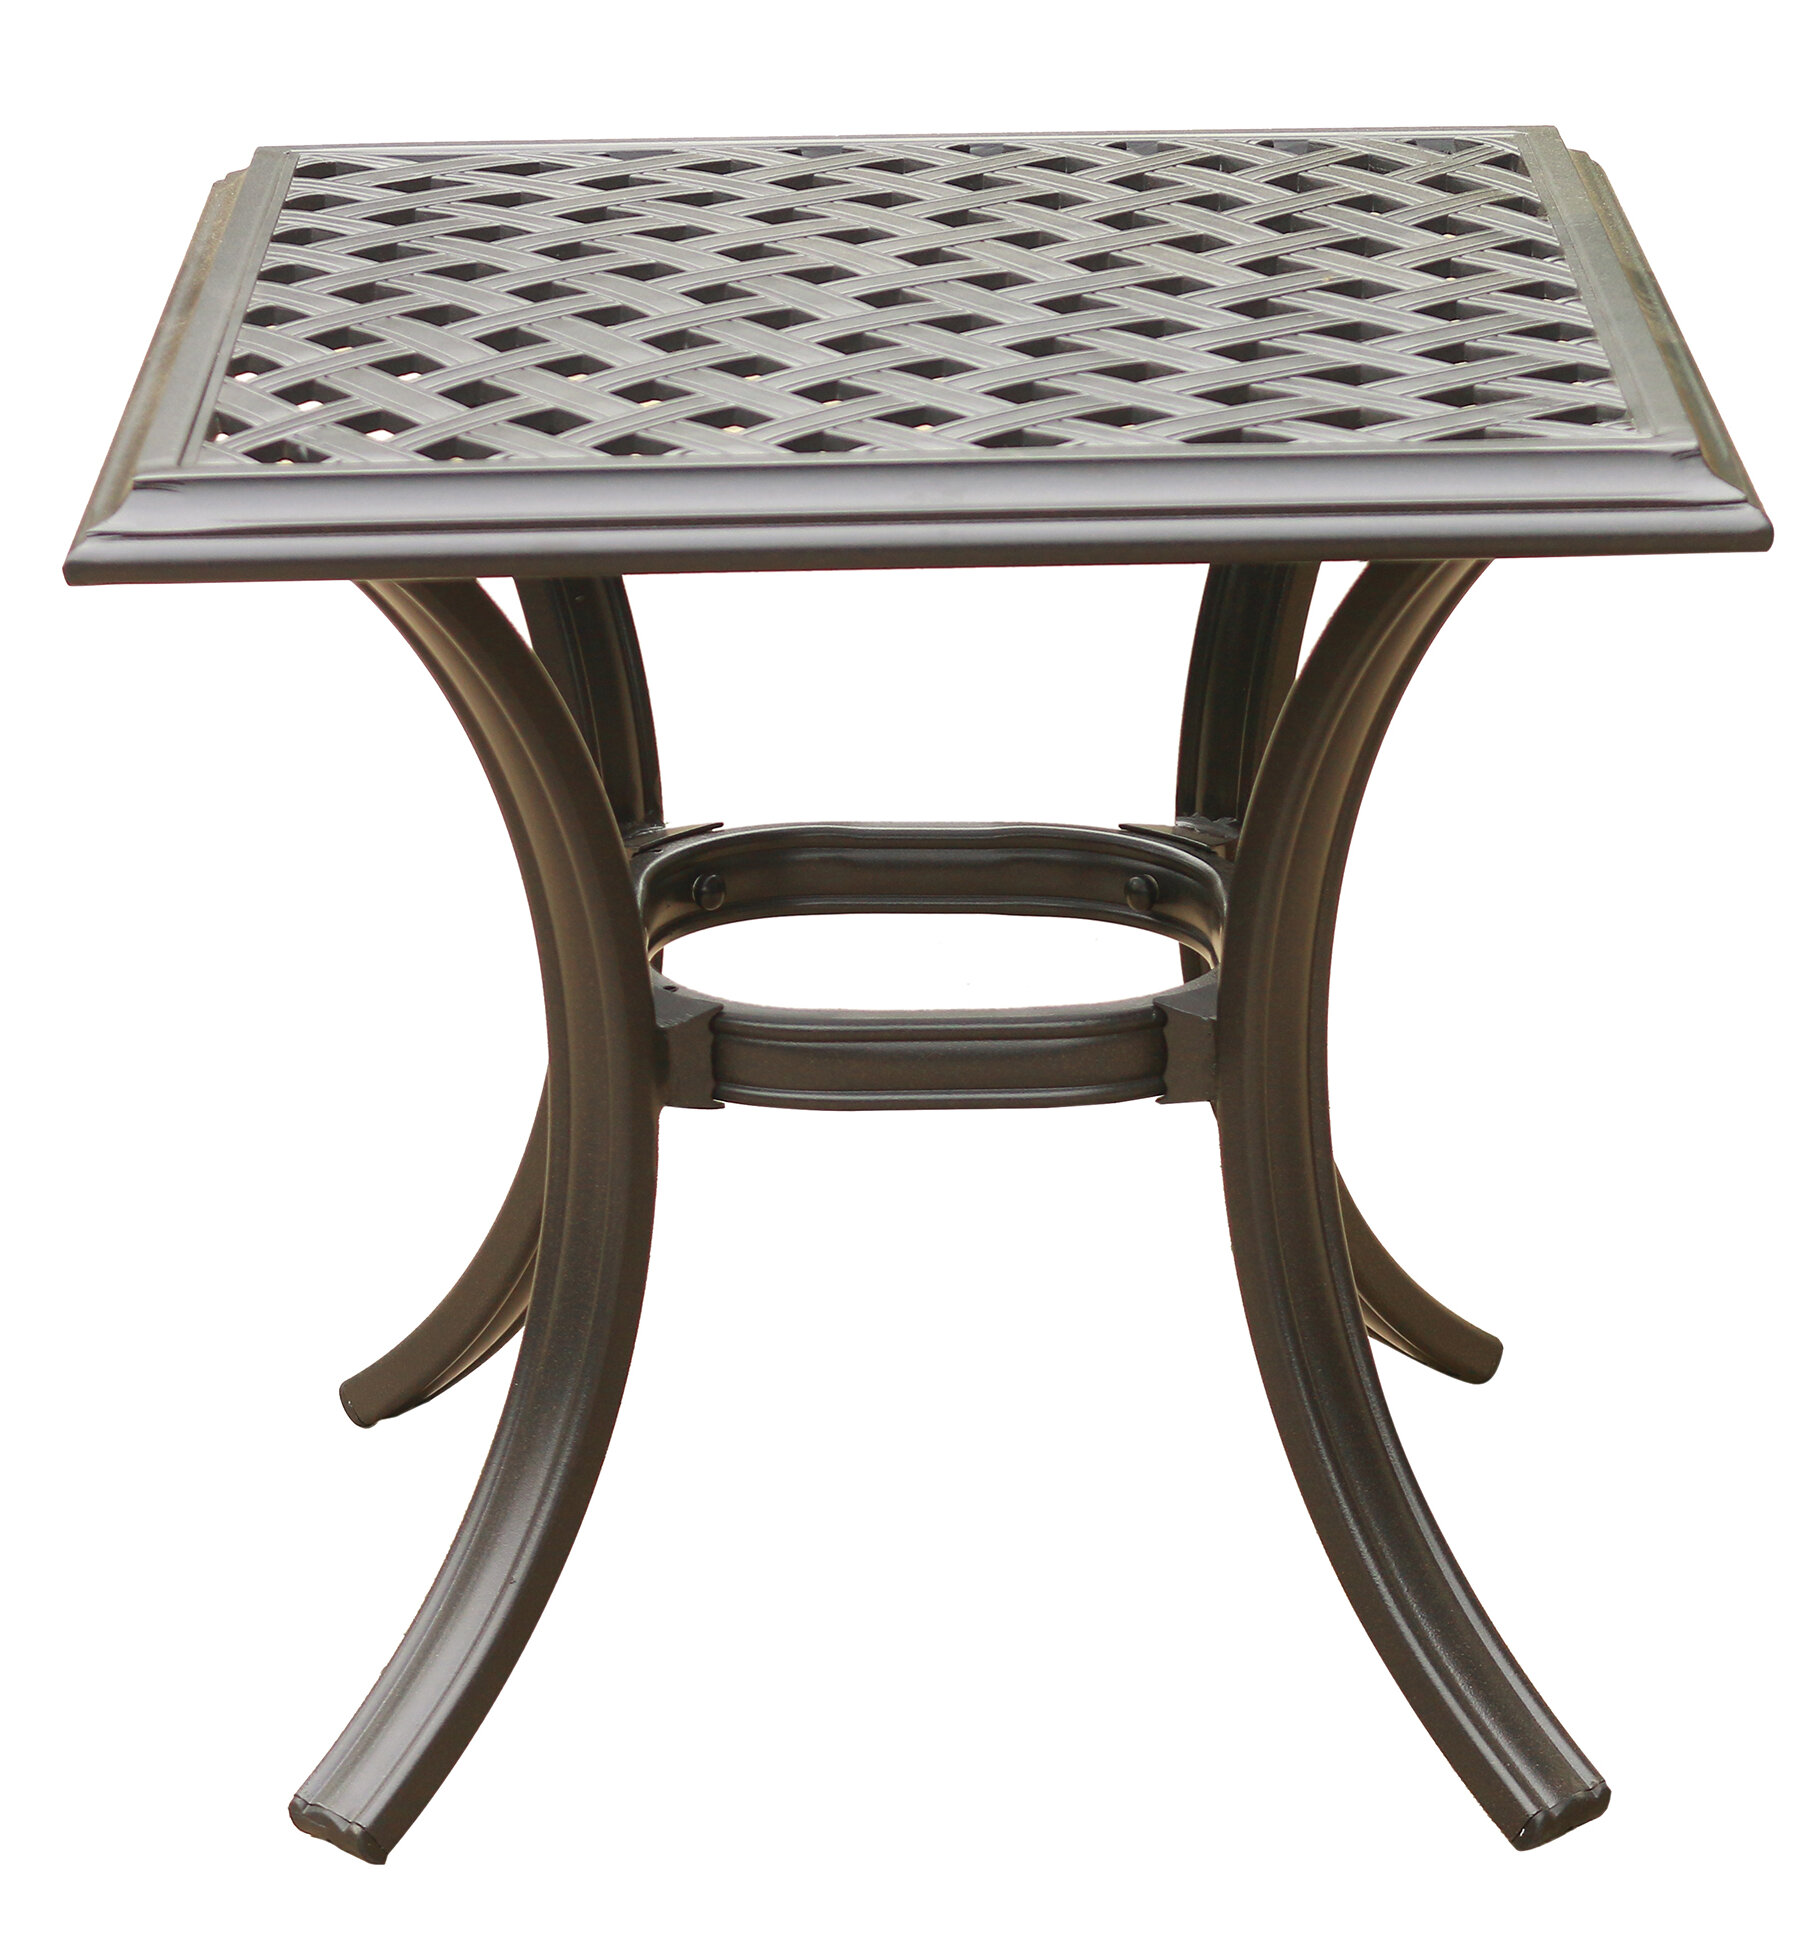 Darby Home Co Dalessio Standard Aluminum Side Table Reviews Wayfair